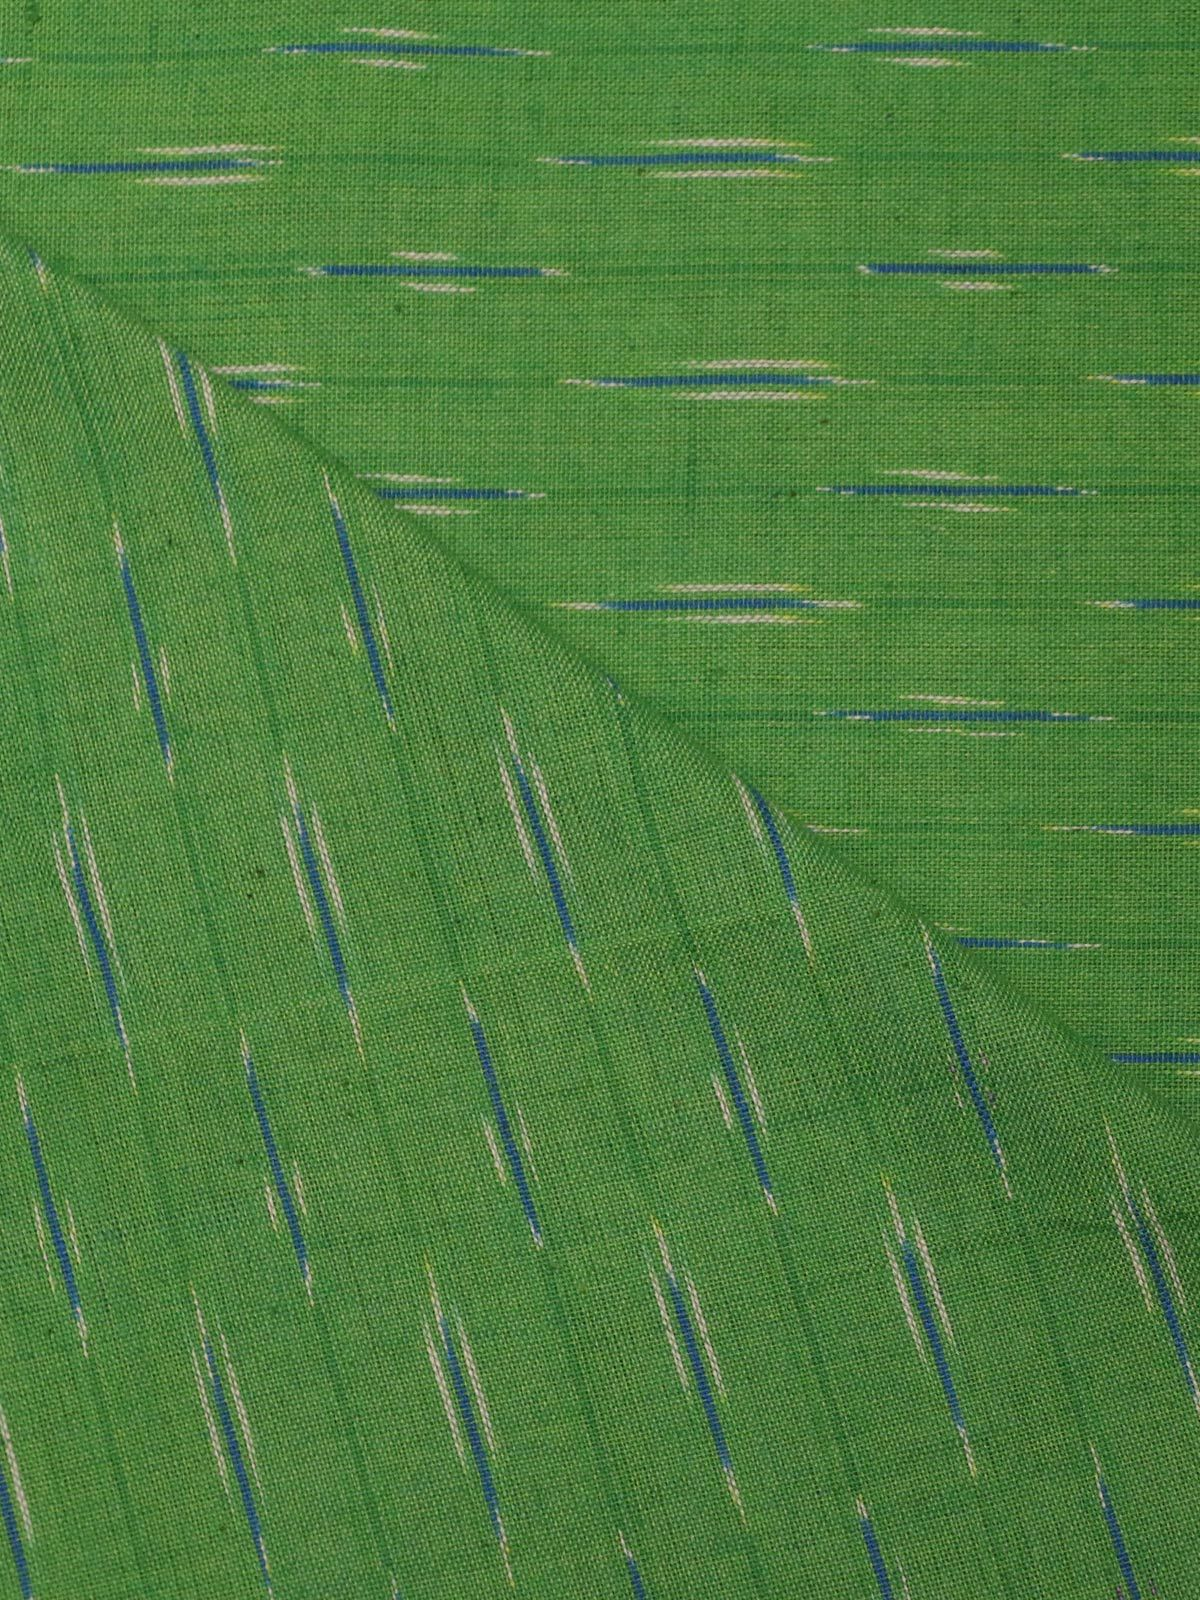 Green color ikat handloom cotton fabric